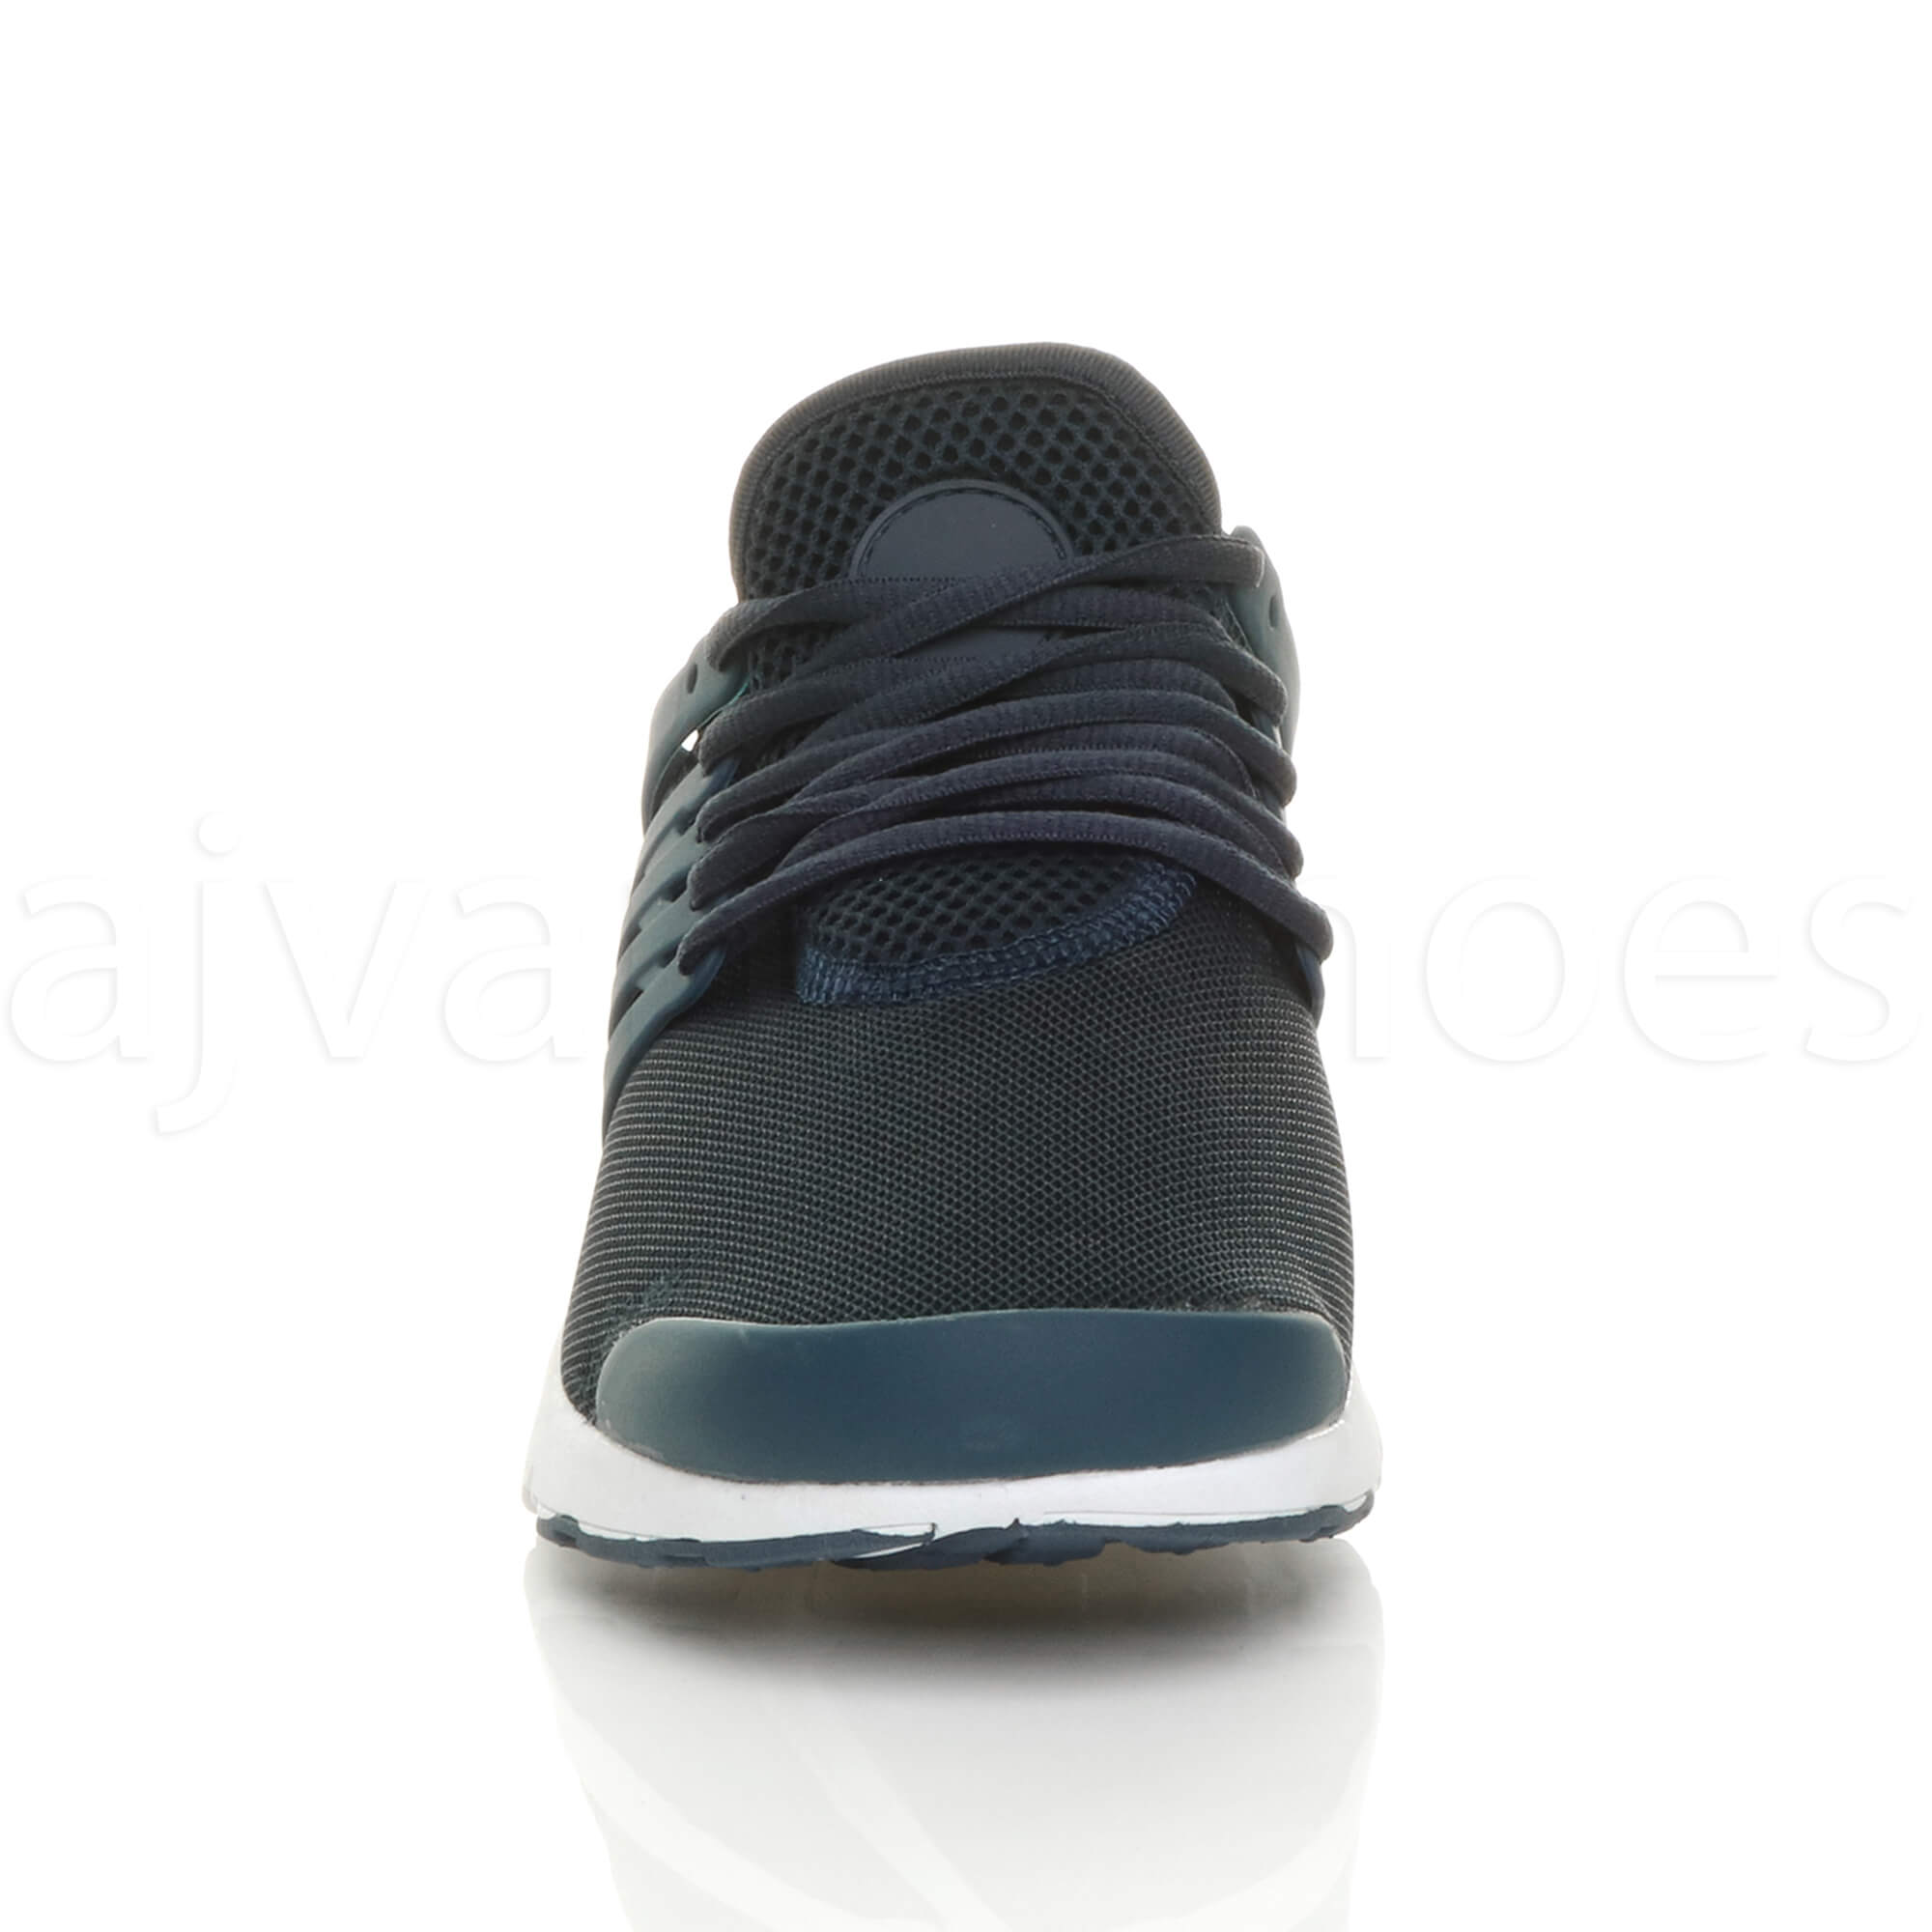 MENS-LACE-UP-SPORTS-GYM-FITNESS-RUNNING-FLEXIBLE-TRAINERS-CASUAL-SNEAKERS-SIZE thumbnail 39